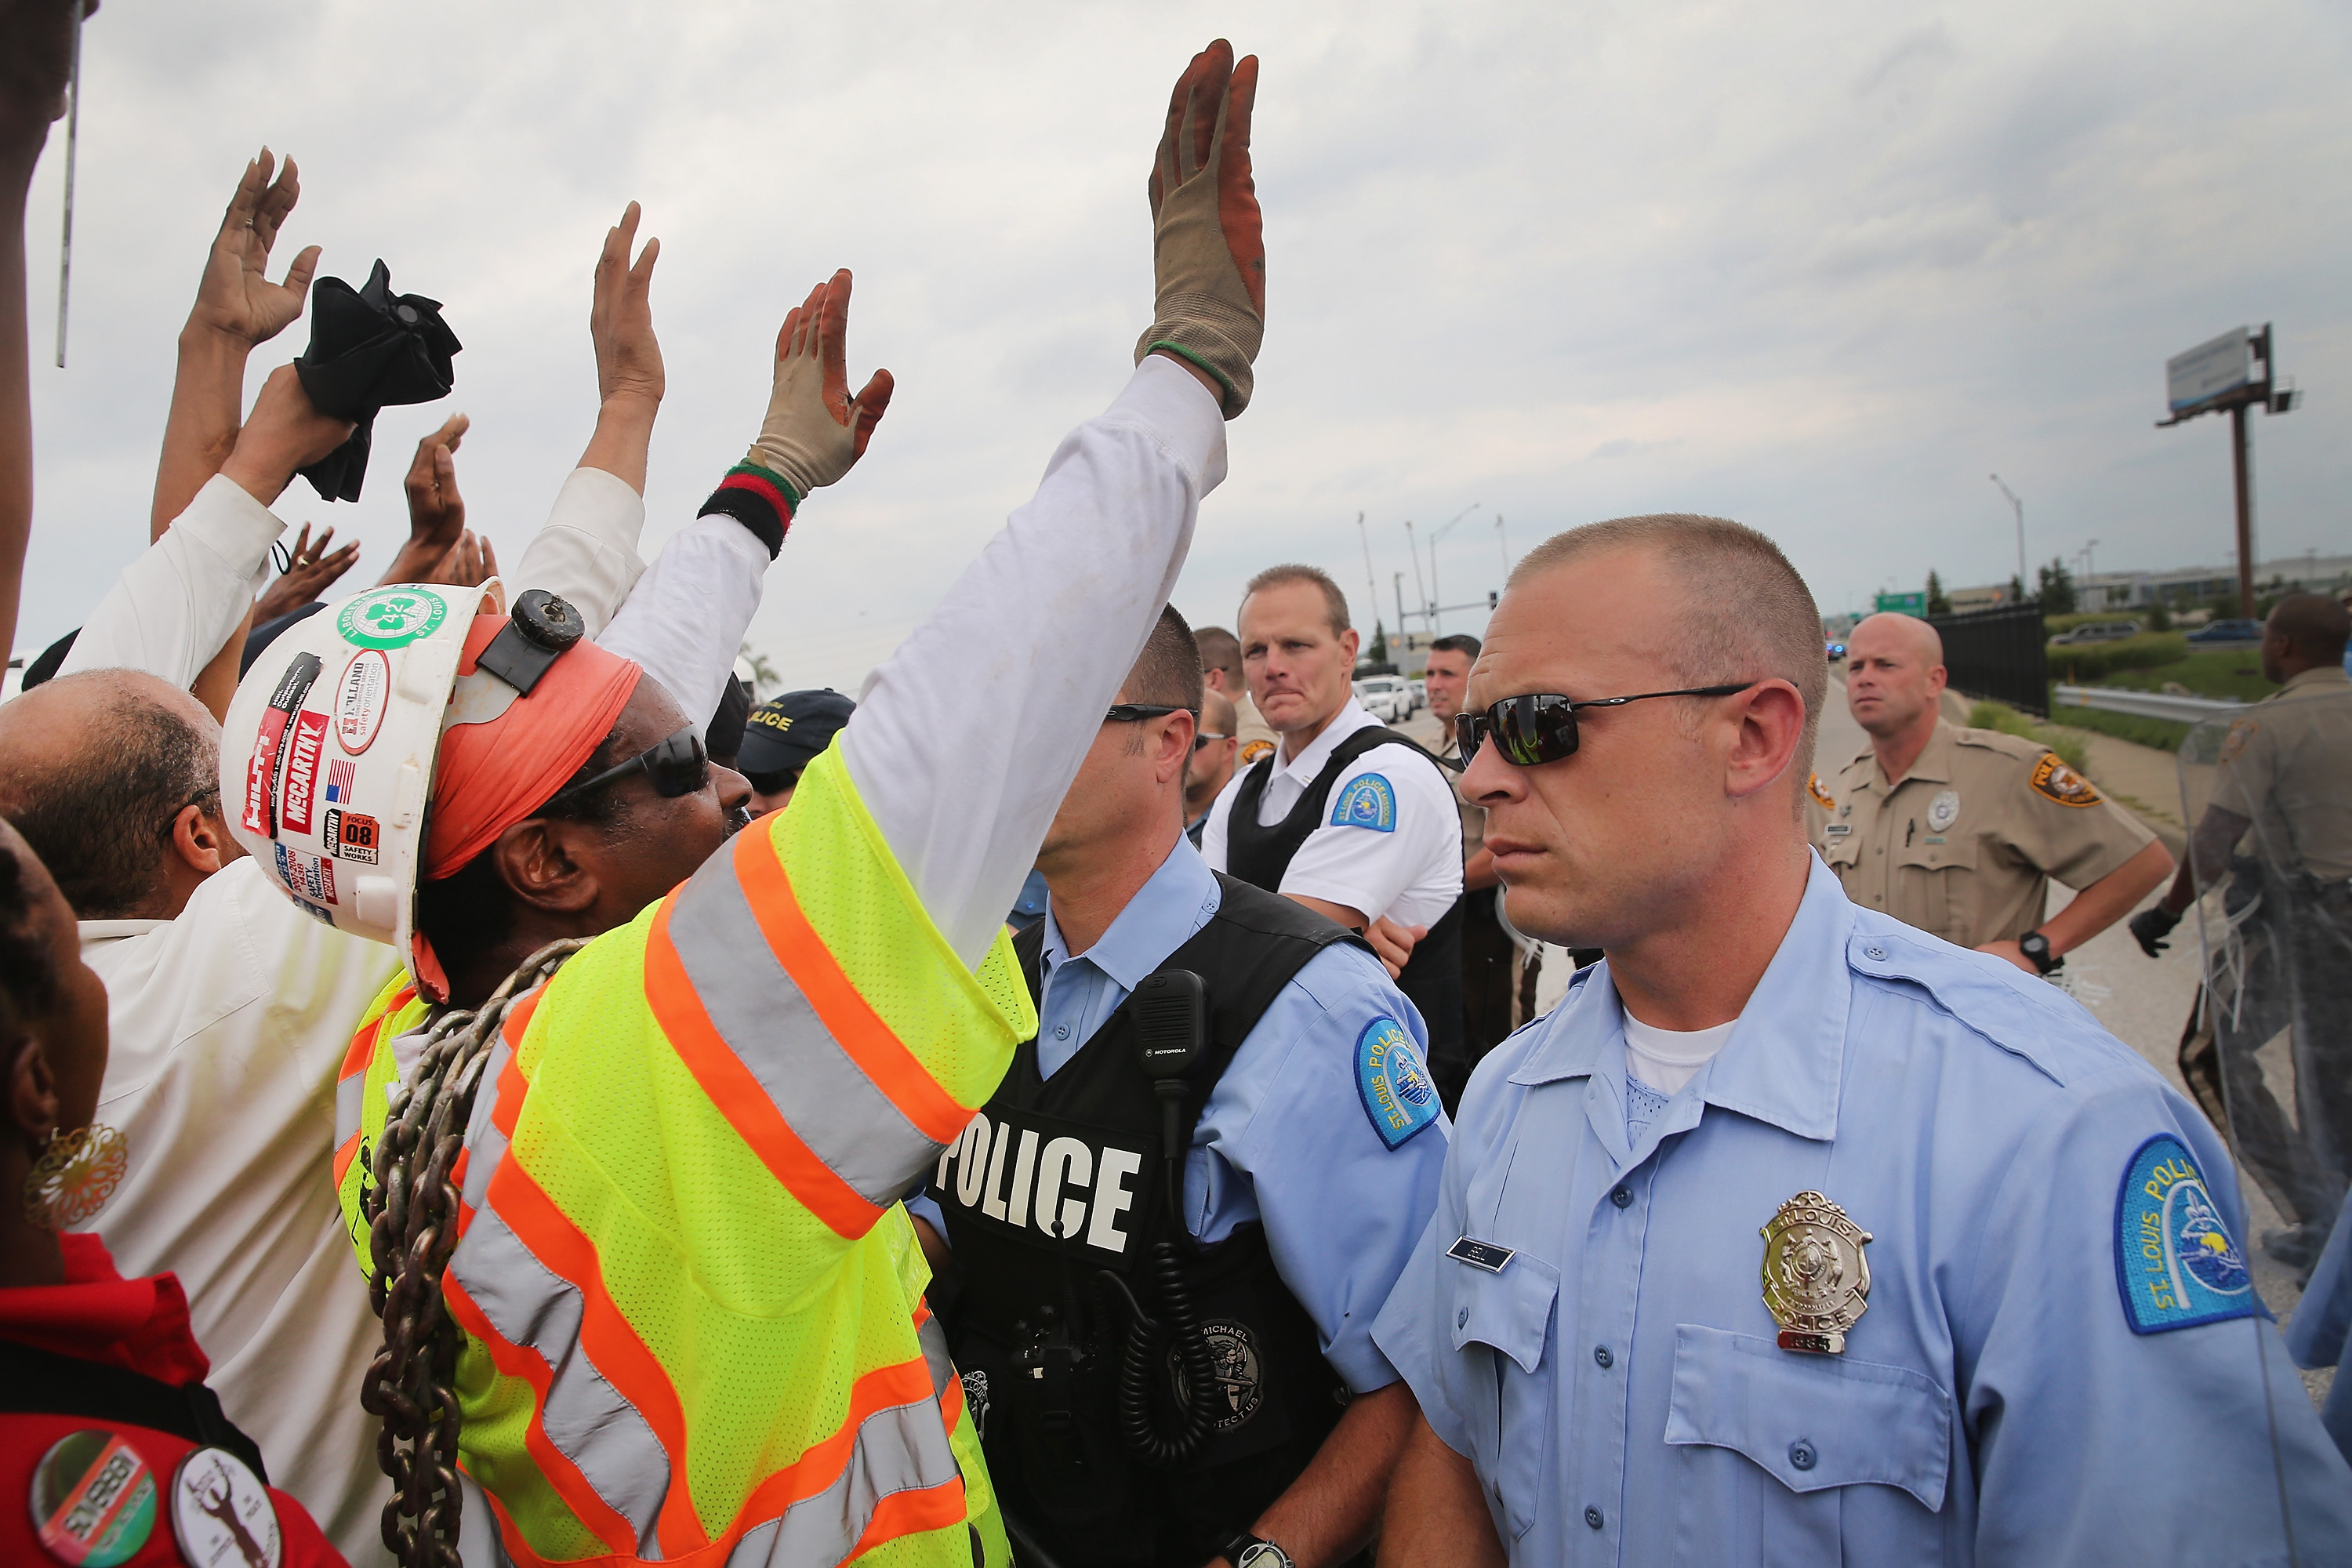 Police block demonstrators from gaining access to Interstate Highway 70 on September 10, 2014 near Ferguson, Missouri. (Photo by Scott Olson/Getty Images)